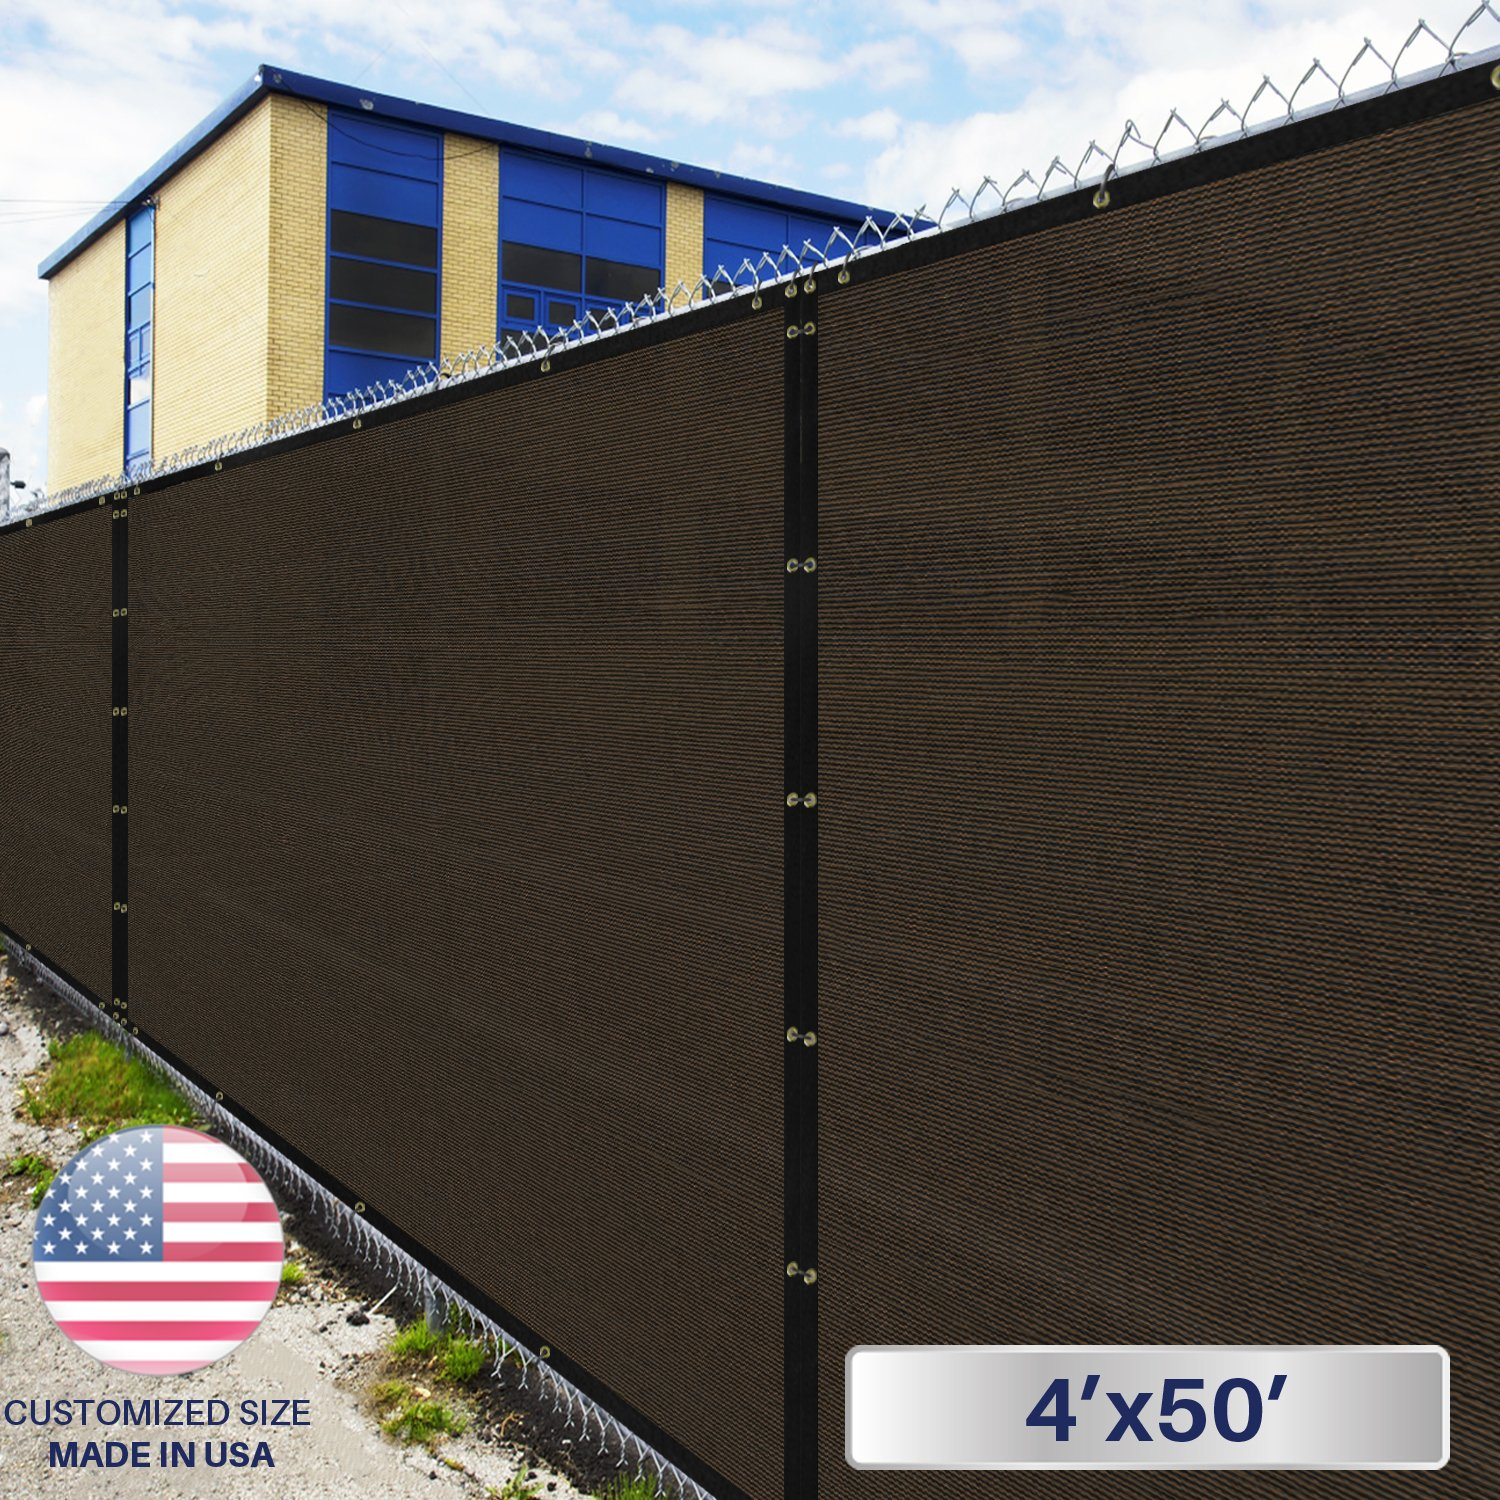 Windscreen4less Heavy Duty Privacy Screen Fence in Color Brown with Black Strips 4' x 50' Brass Grommets w/3-Year Warranty 150 GSM (Customized